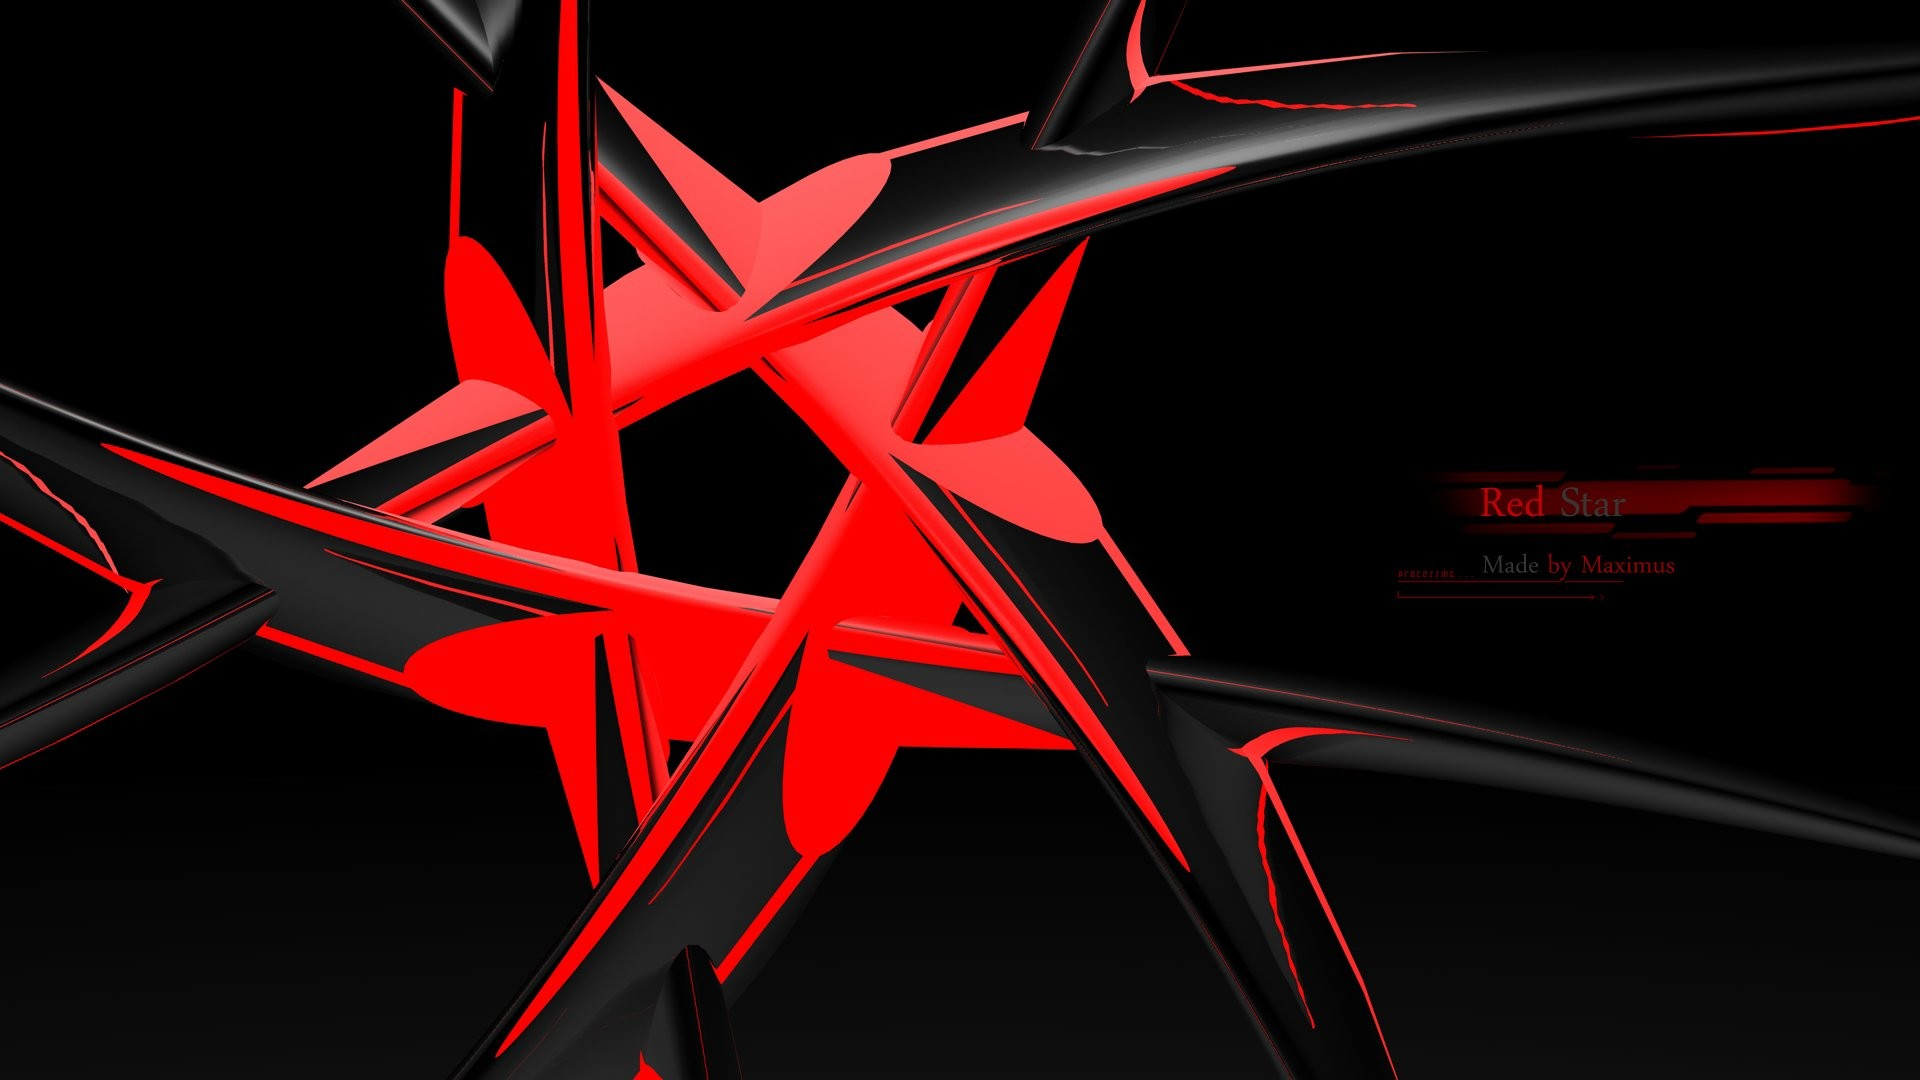 Red Star 840098